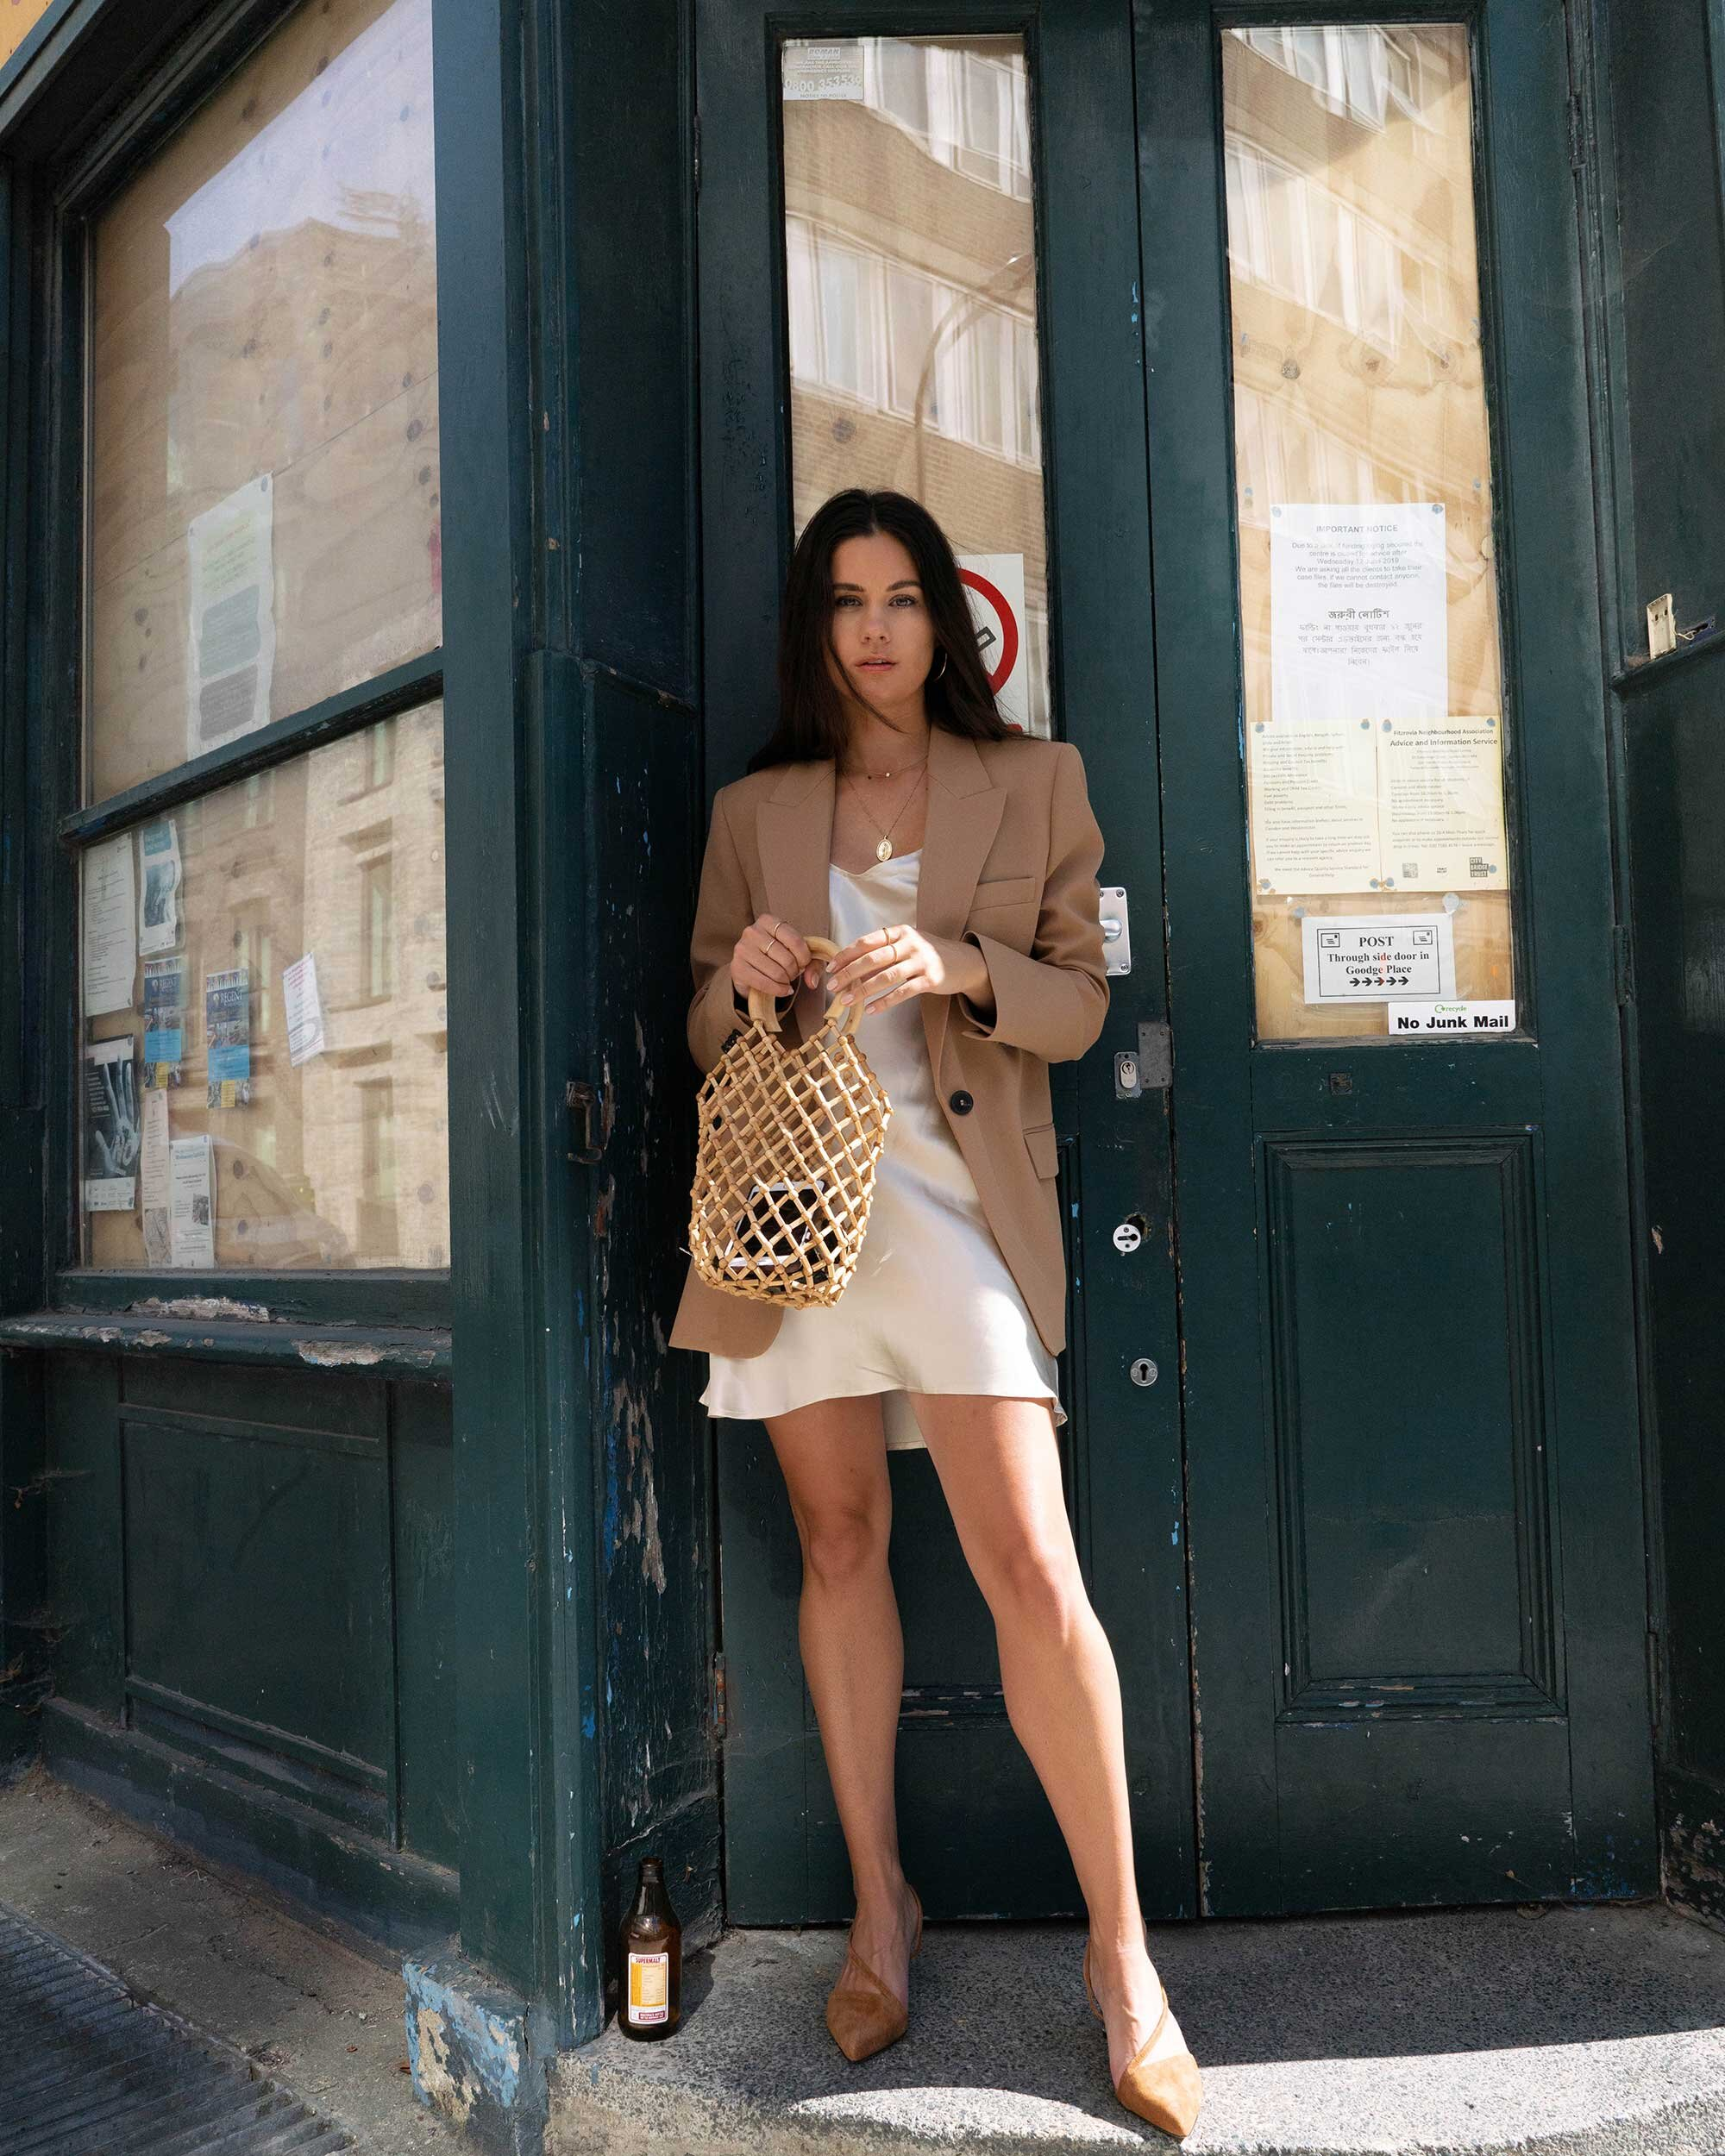 Sarah Butler of Sarah Styles Seattle wears ivory Slip dress and tan blazer in London | @sarahchristine -10.jpg